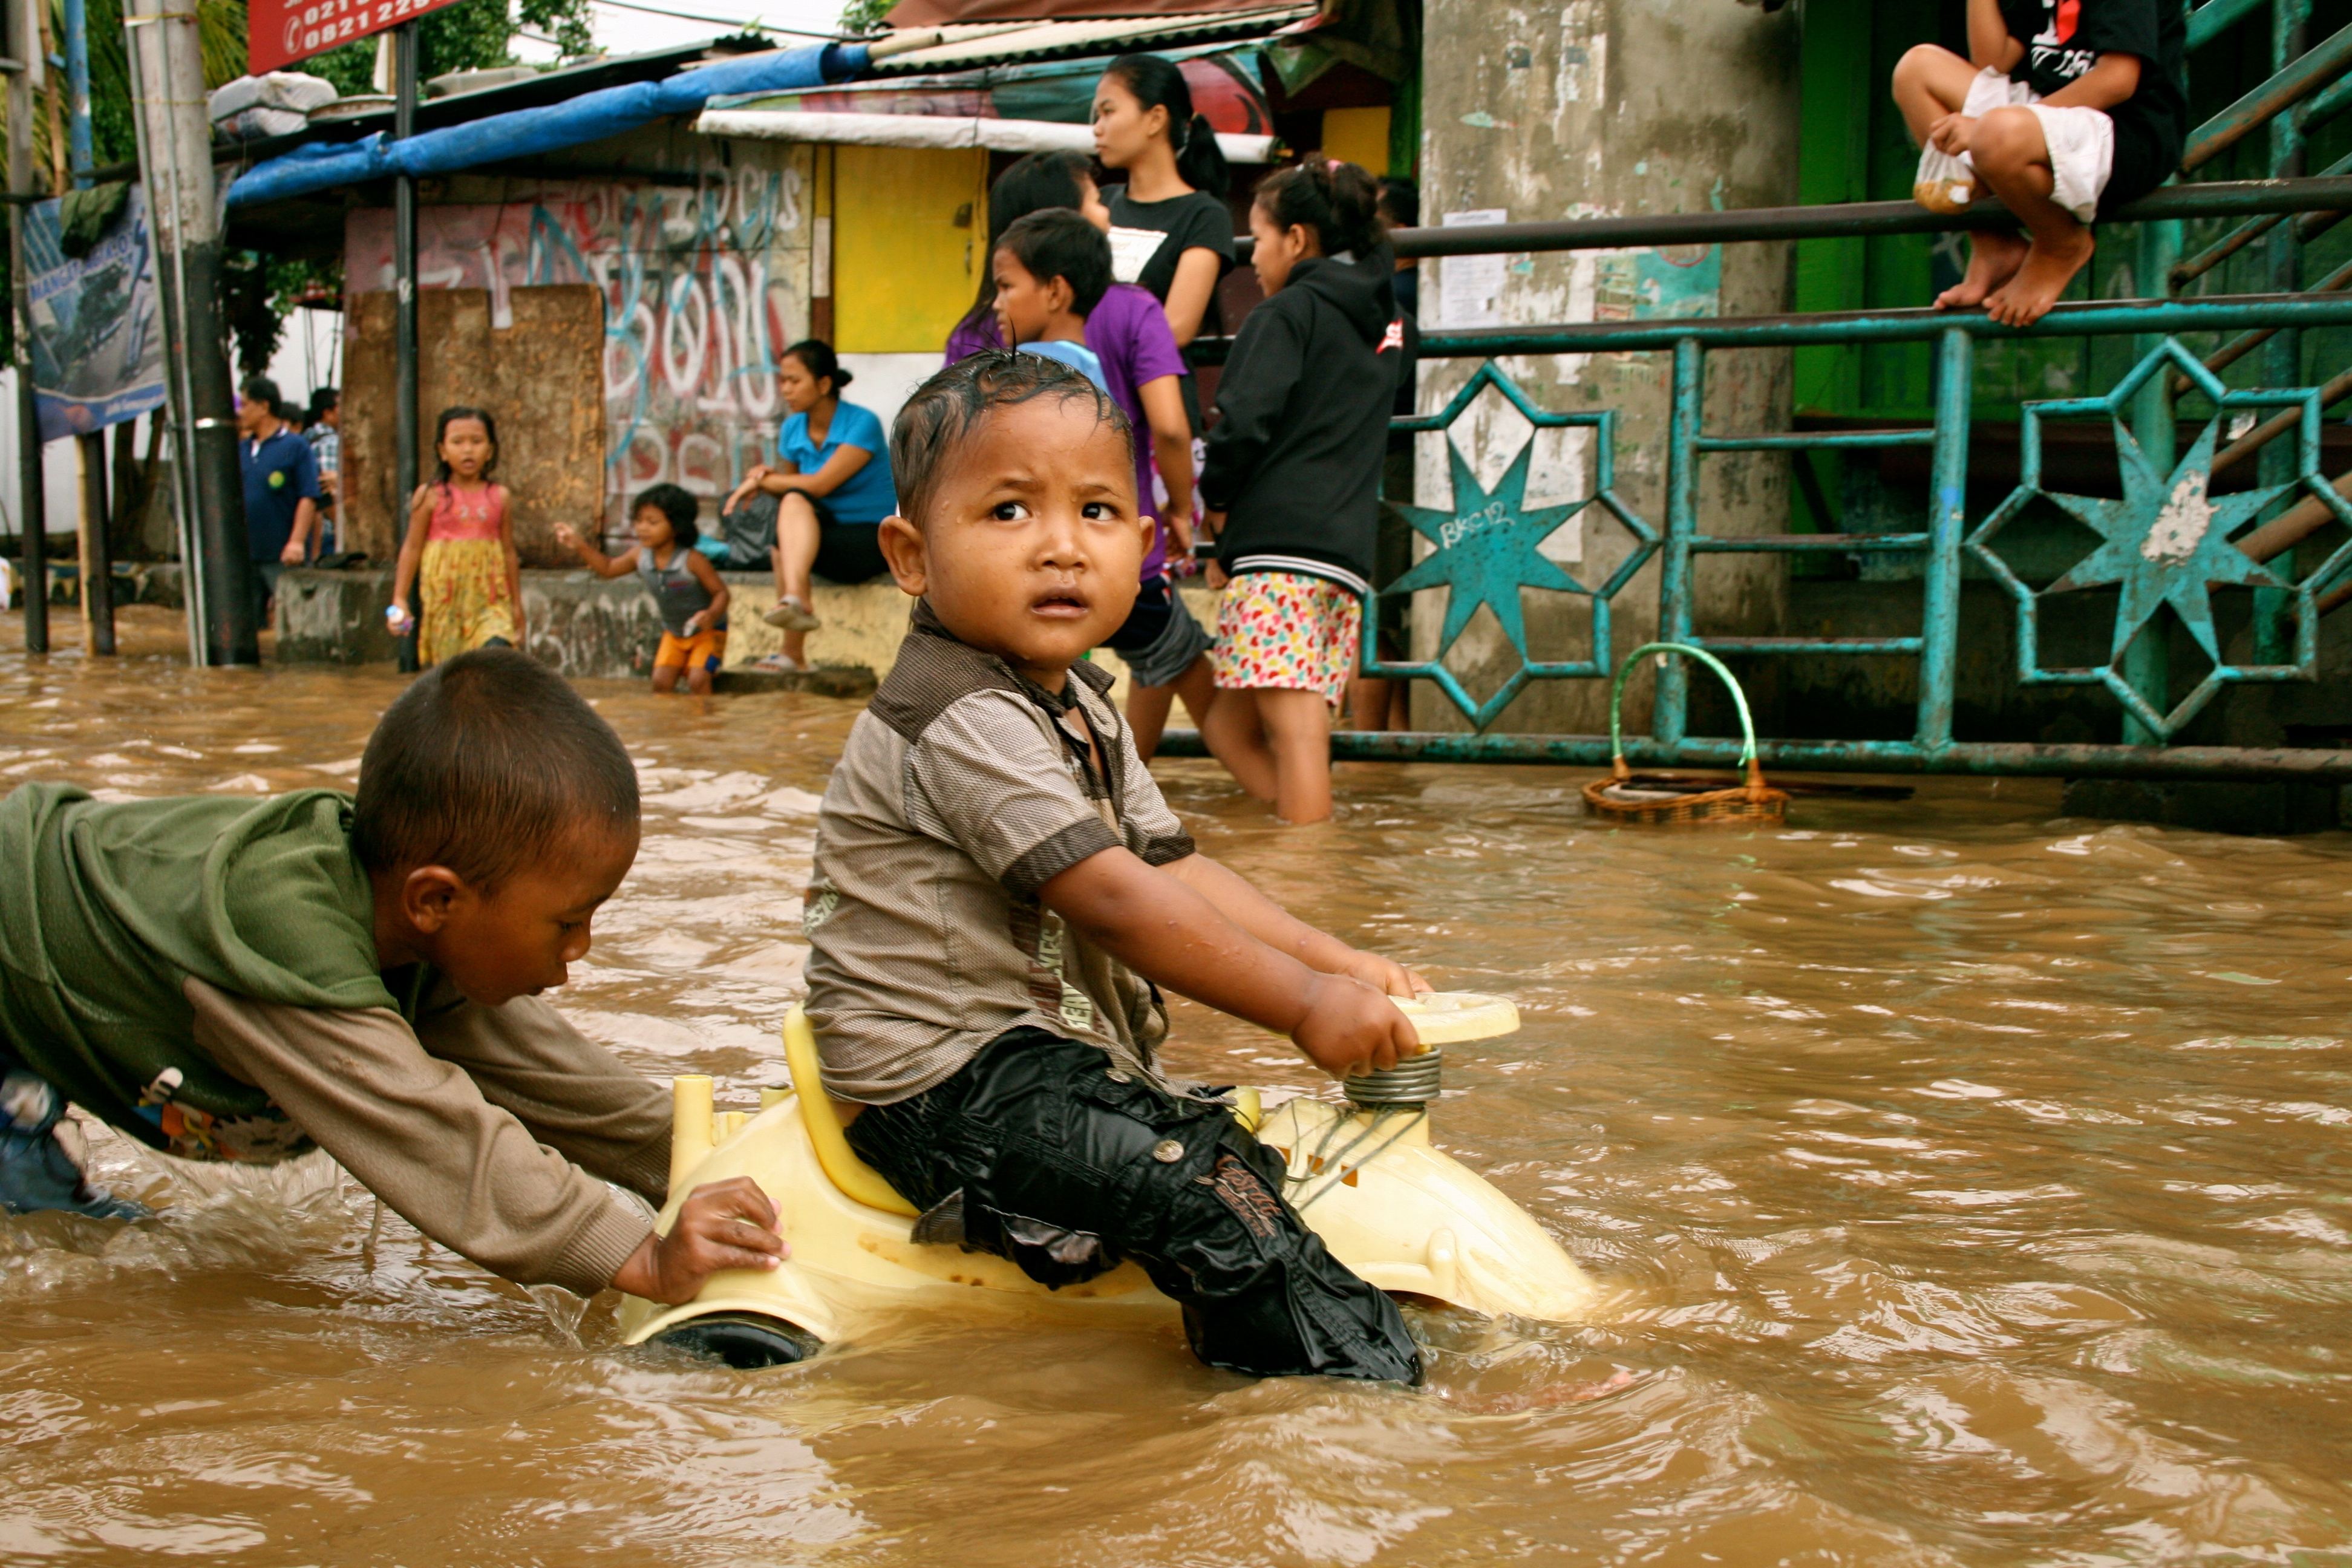 Indonesia floods remind of cross-sector collaboration